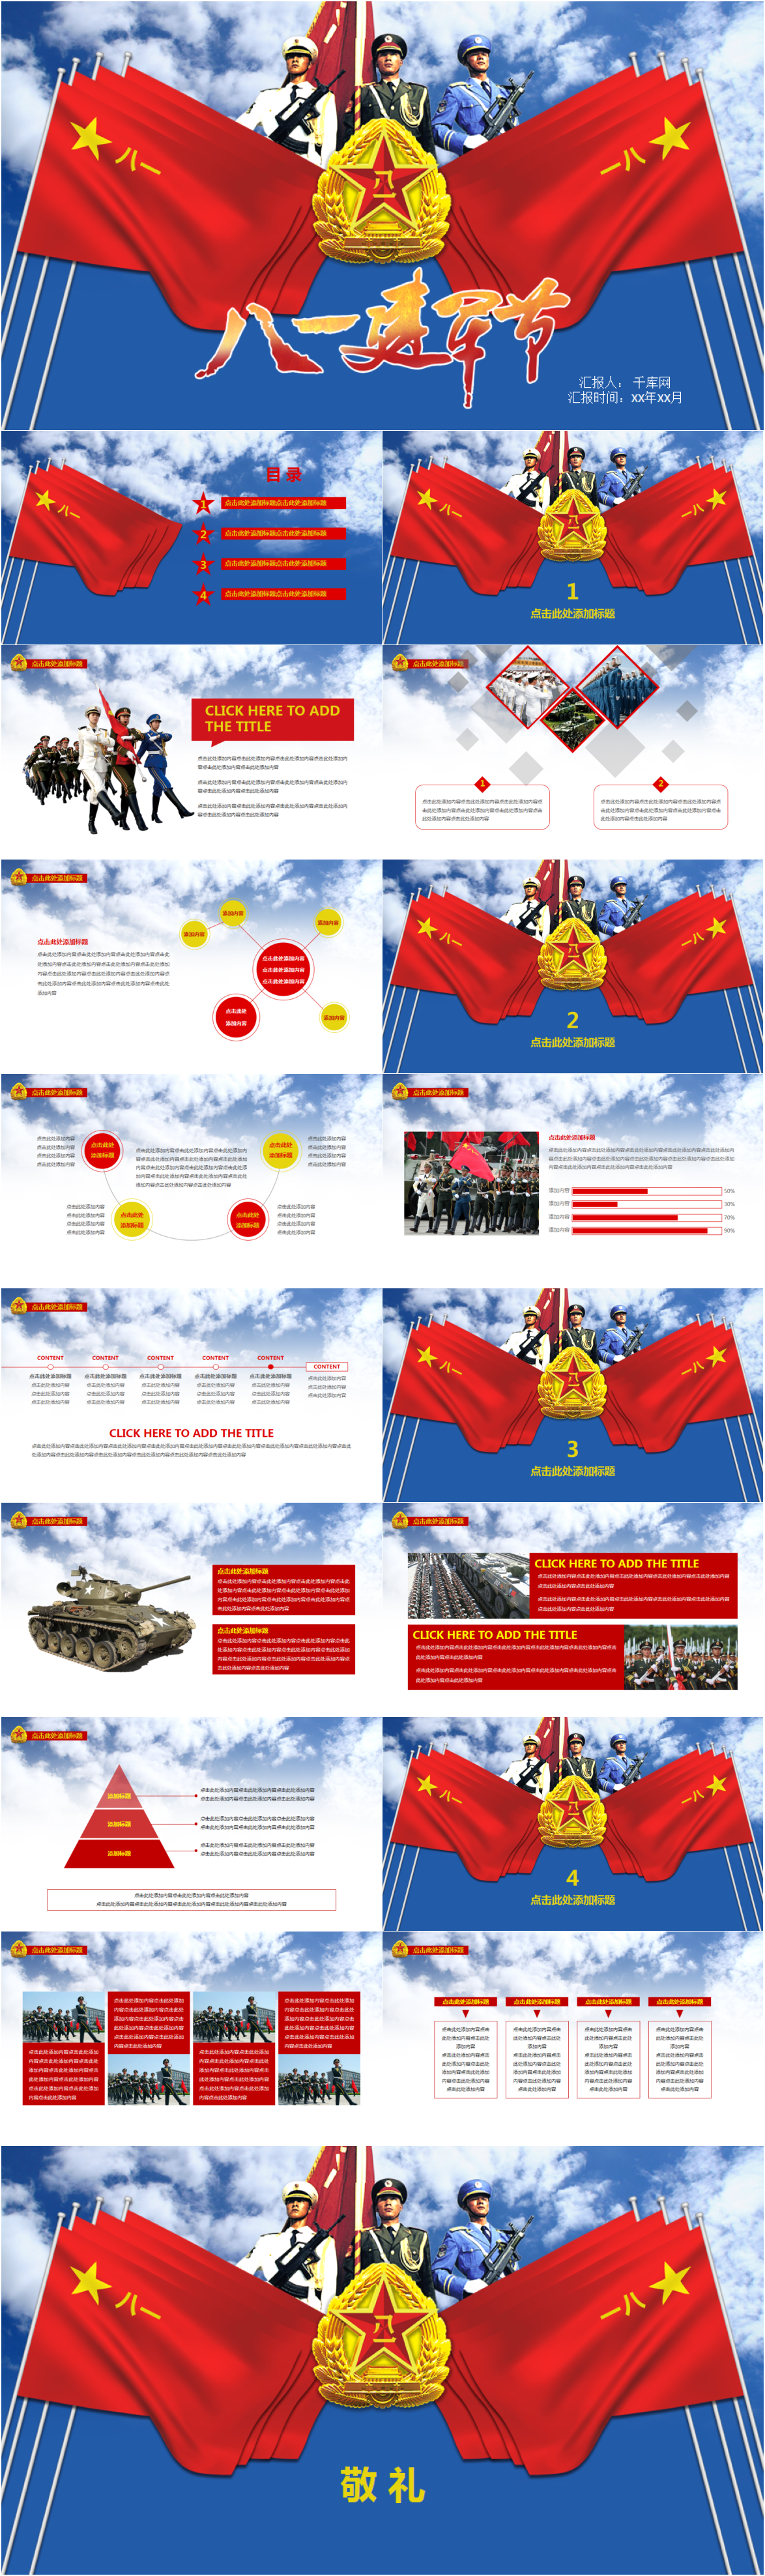 Awesome ppt template for the august 1 army festival for free ppt template for the august 1 army festival toneelgroepblik Gallery